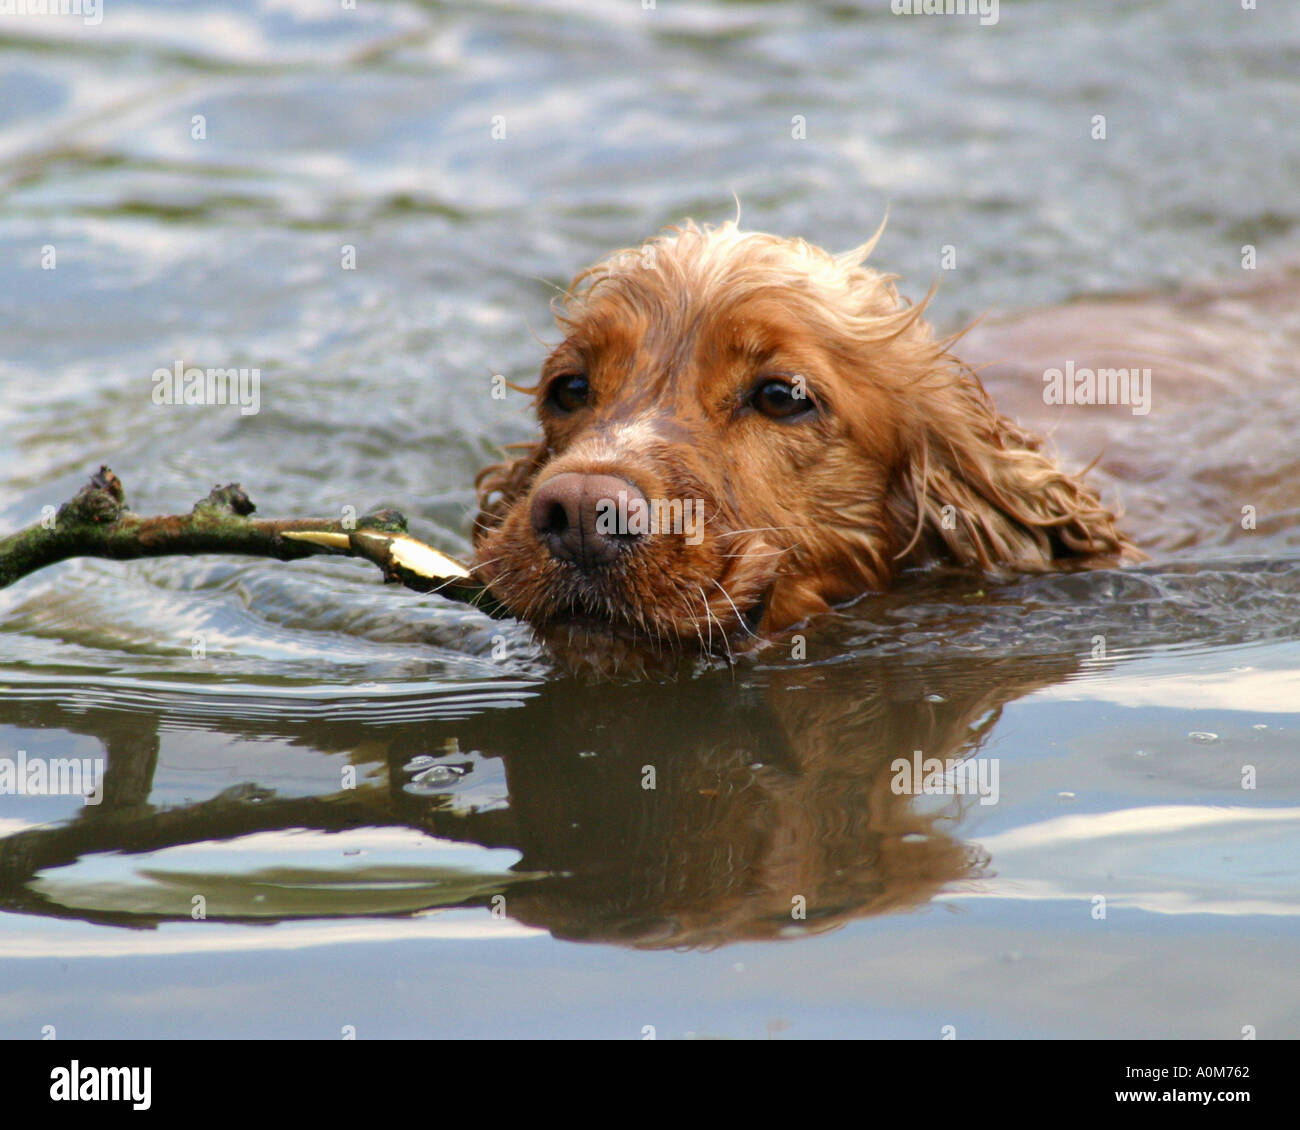 cocker spaniel dog swiming with stick - Stock Image